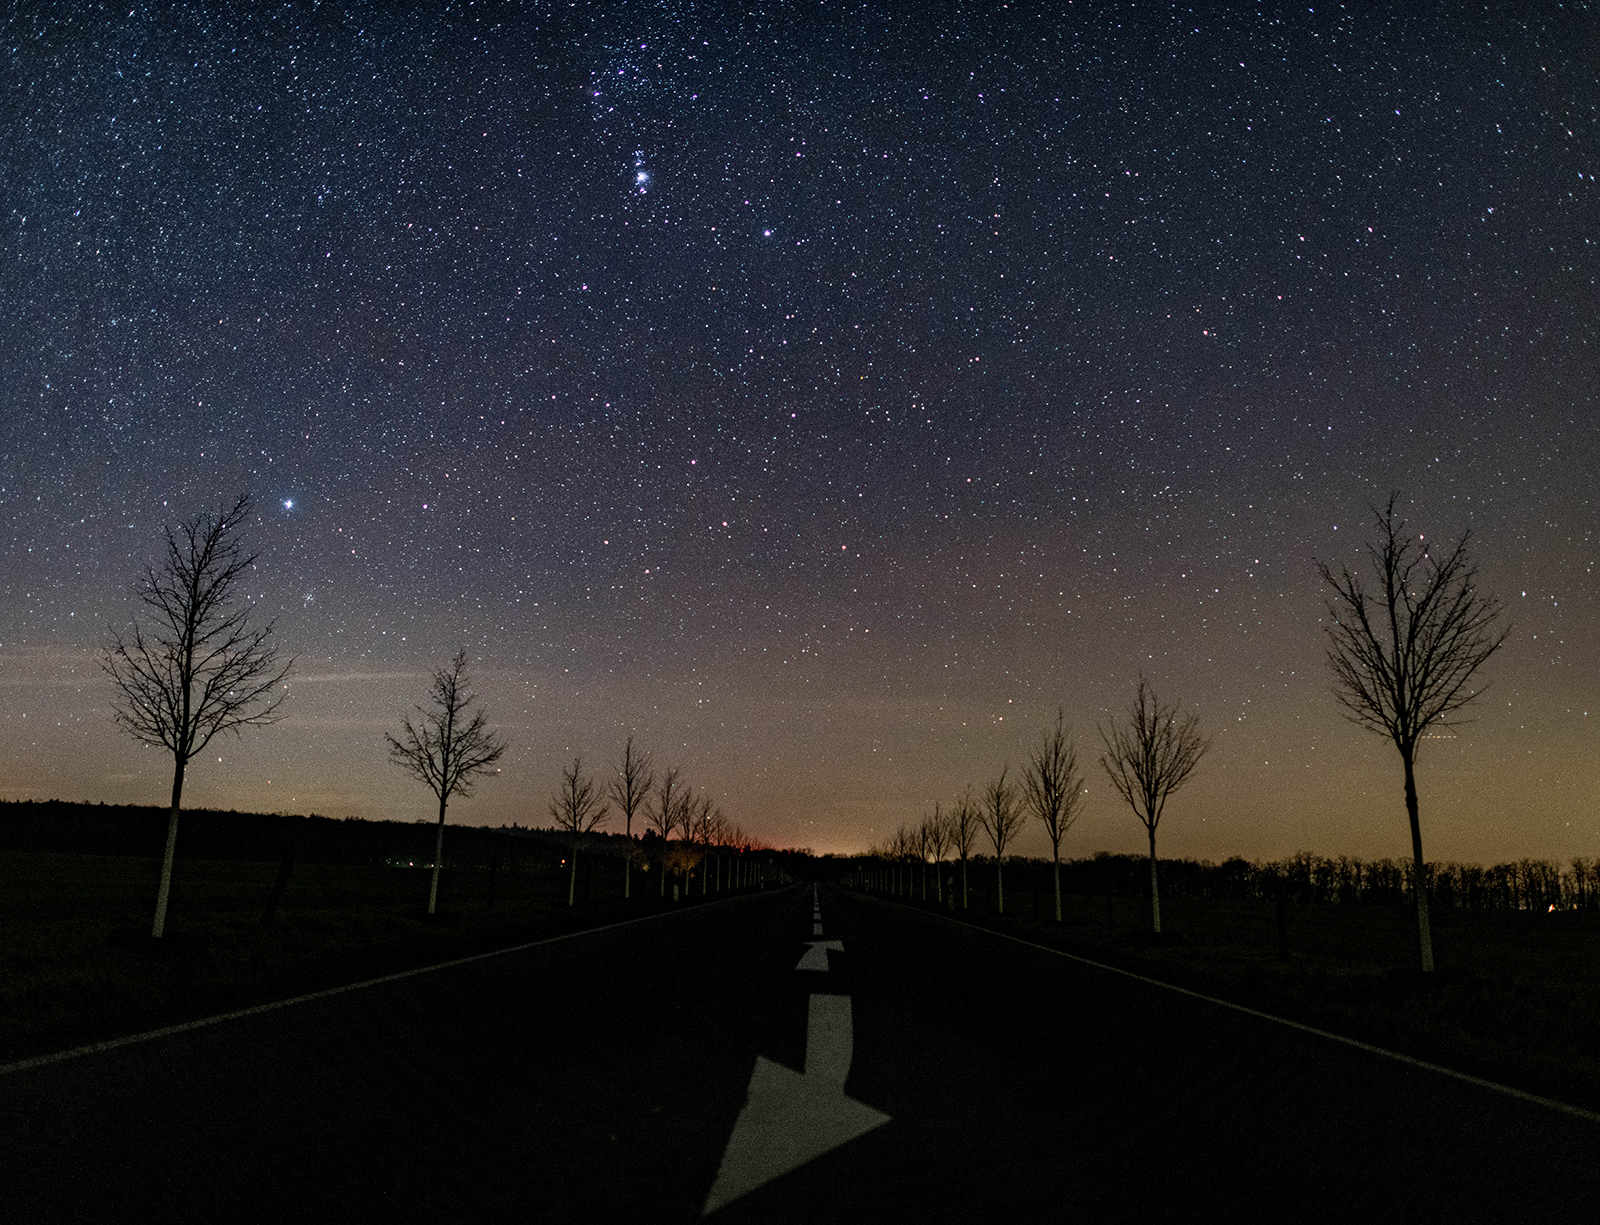 Quadrantid meteor shower peaks this weekend and other celestial events in 2021